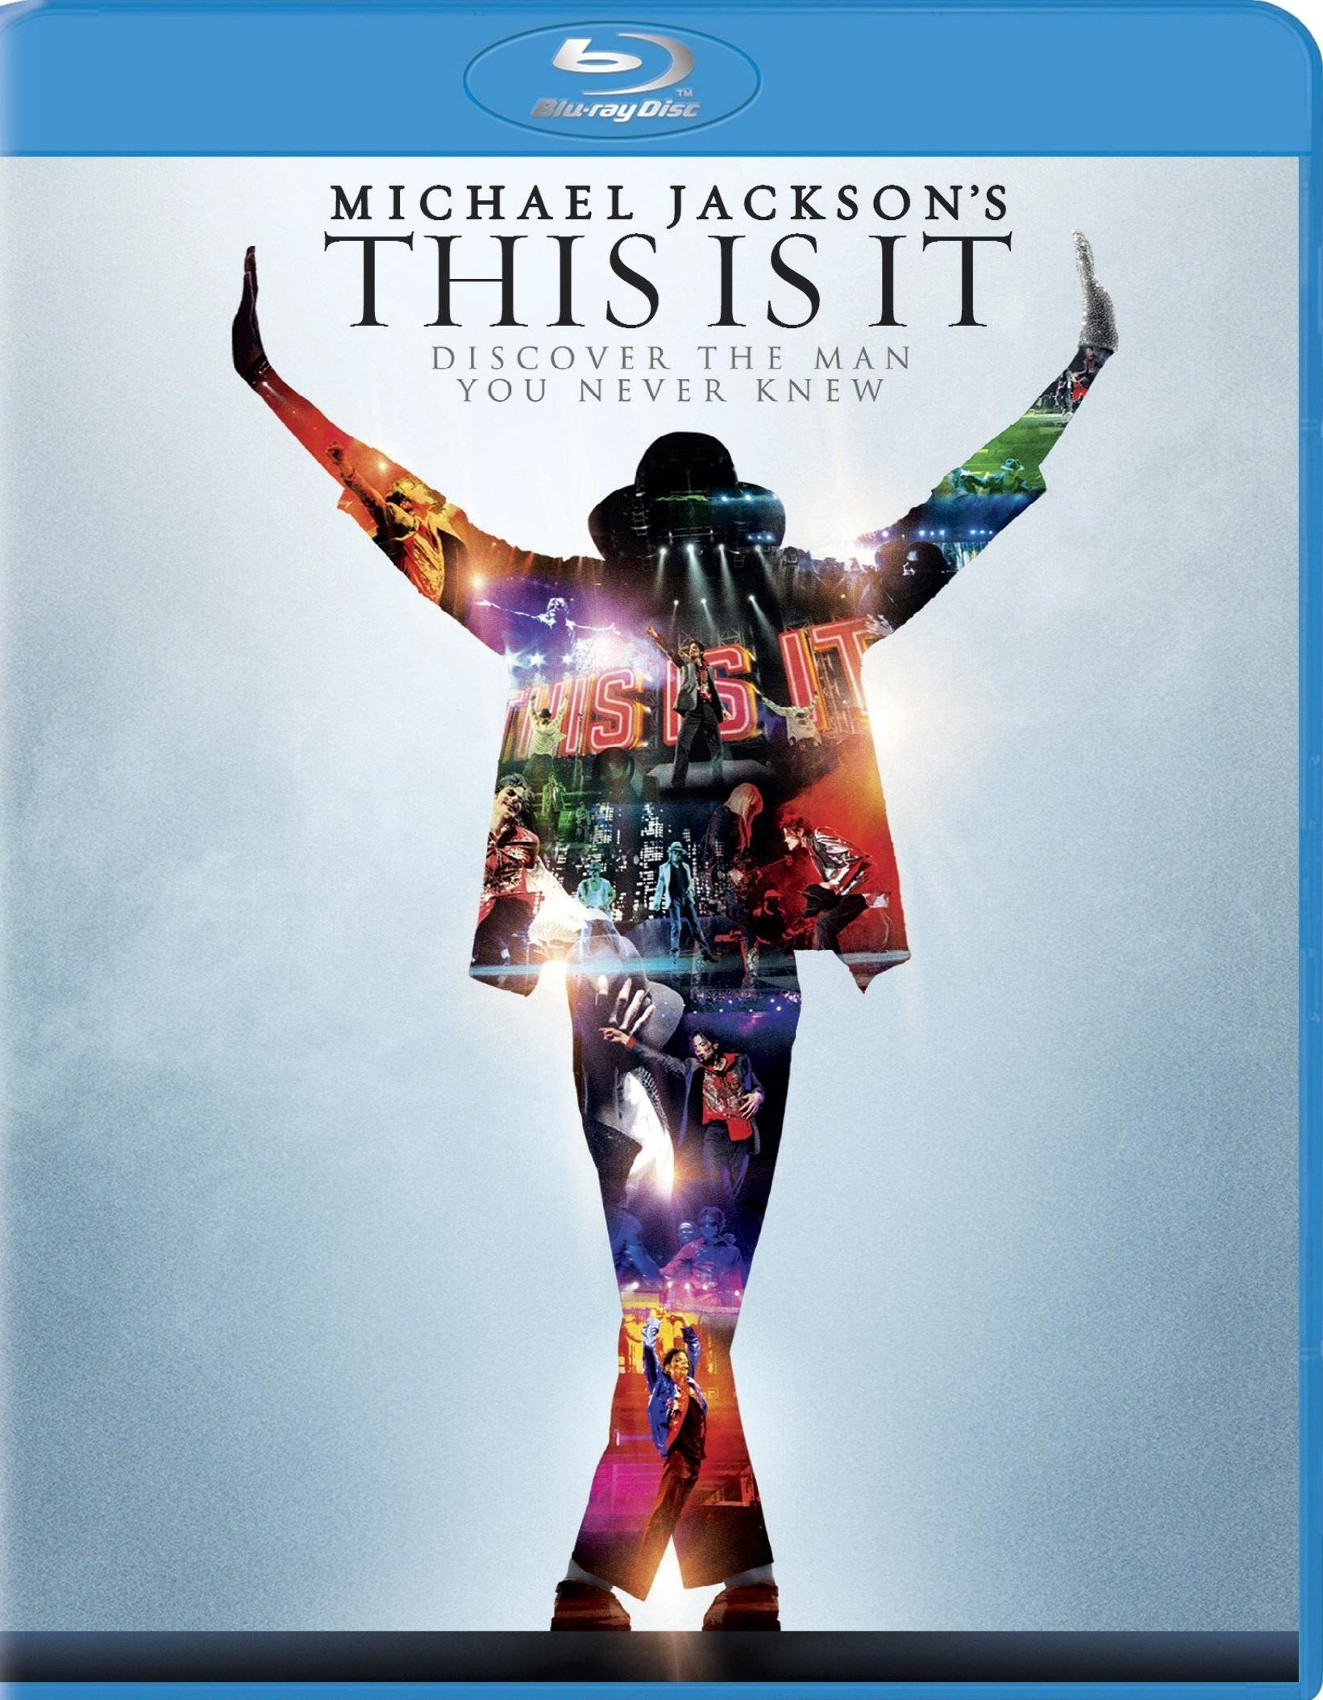 Recensione Michael Jackson - Michael Jackson's This Is It